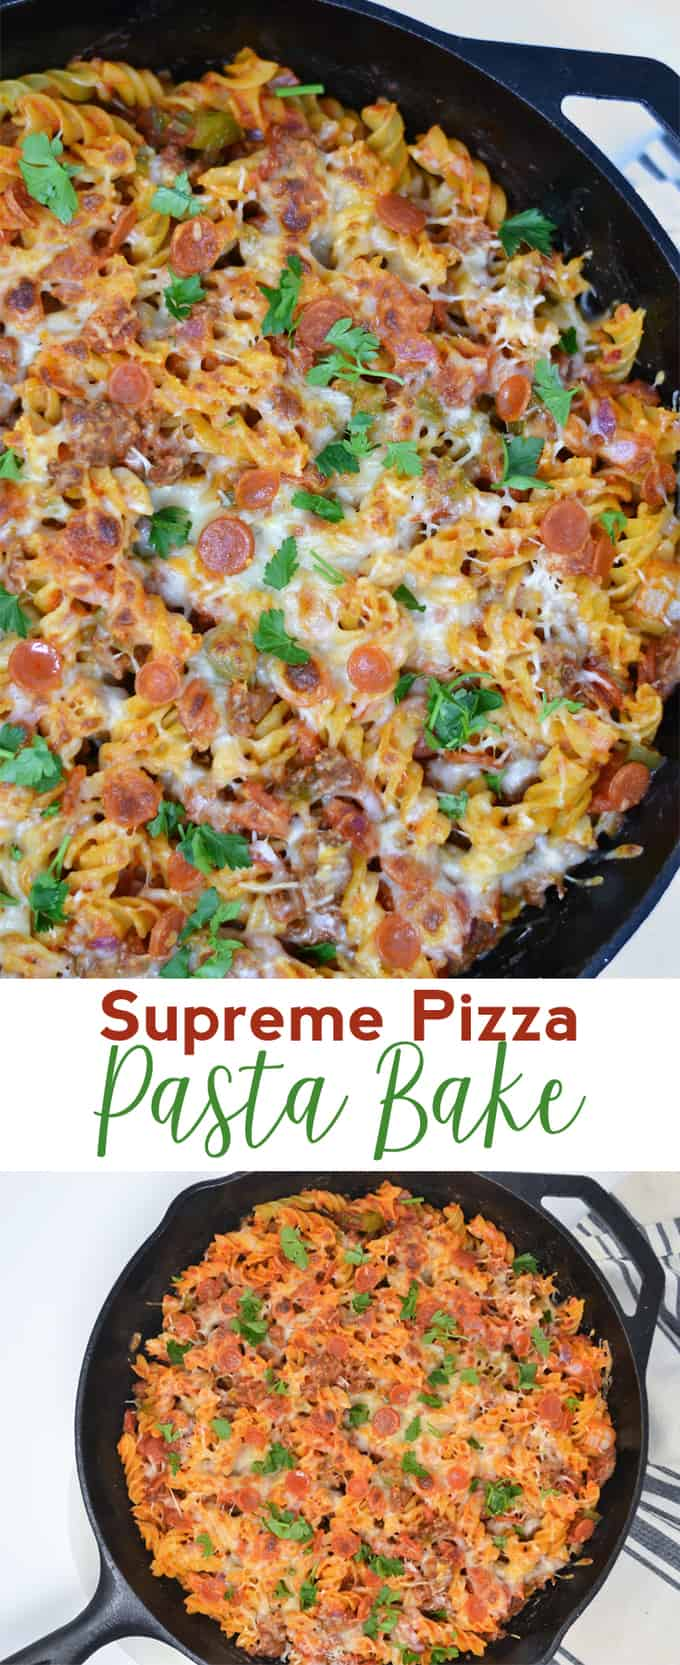 This Supreme Pizza Pasta Bake is an easy pasta recipe that is perfect for weeknight dinners or potlucks!